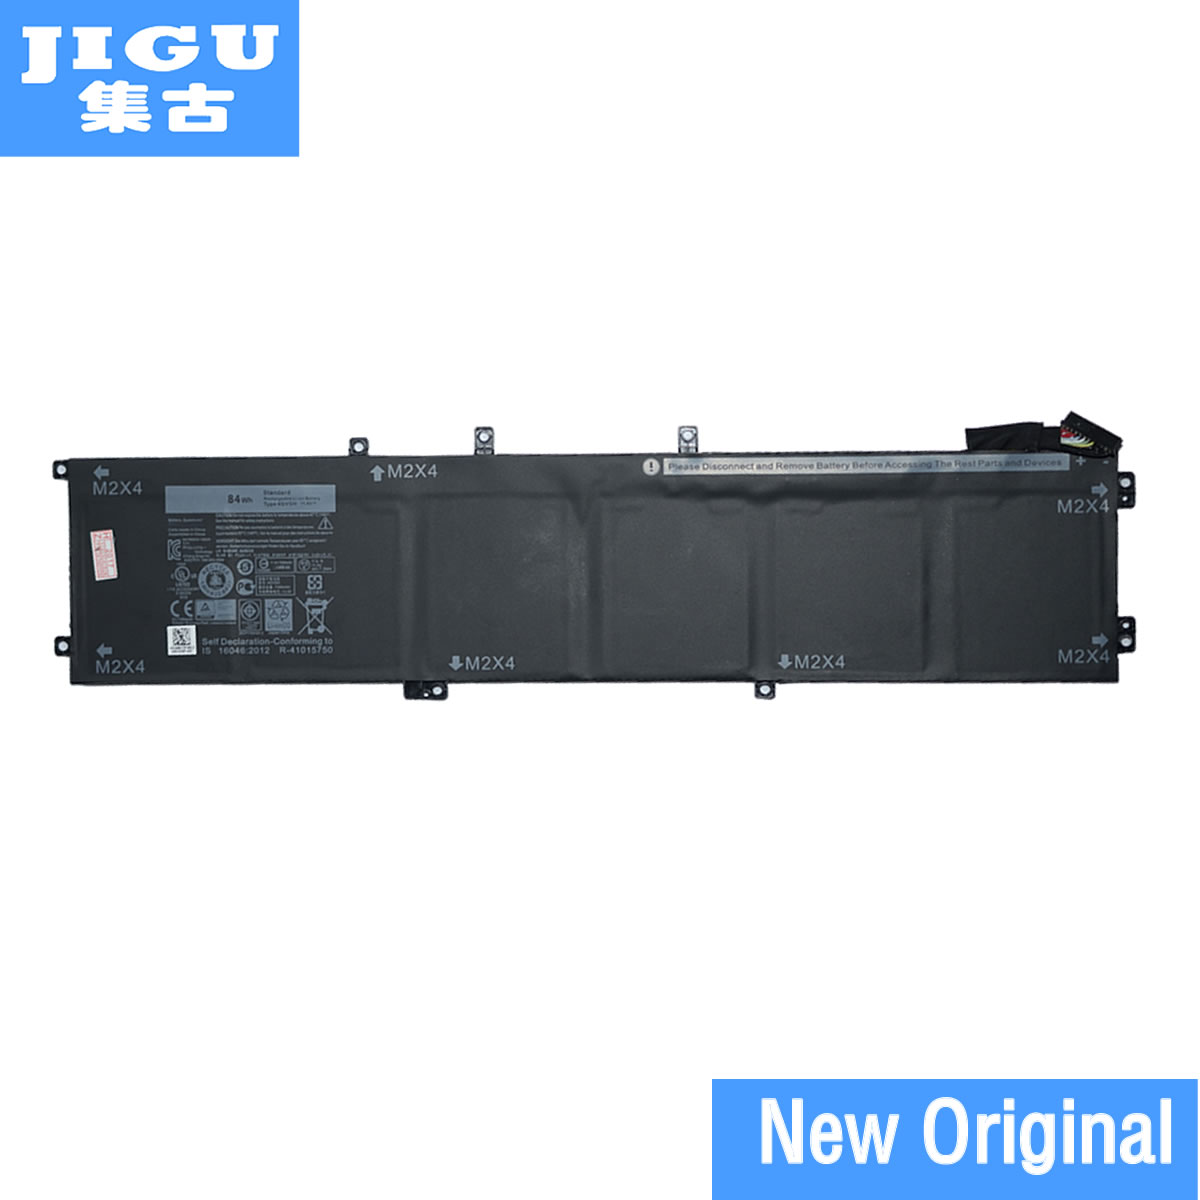 JIGU Original Laptop Battery 1P6KD 4GVGH RRCGW FOR DELL For Precision 5510 XPS 15 9550 image